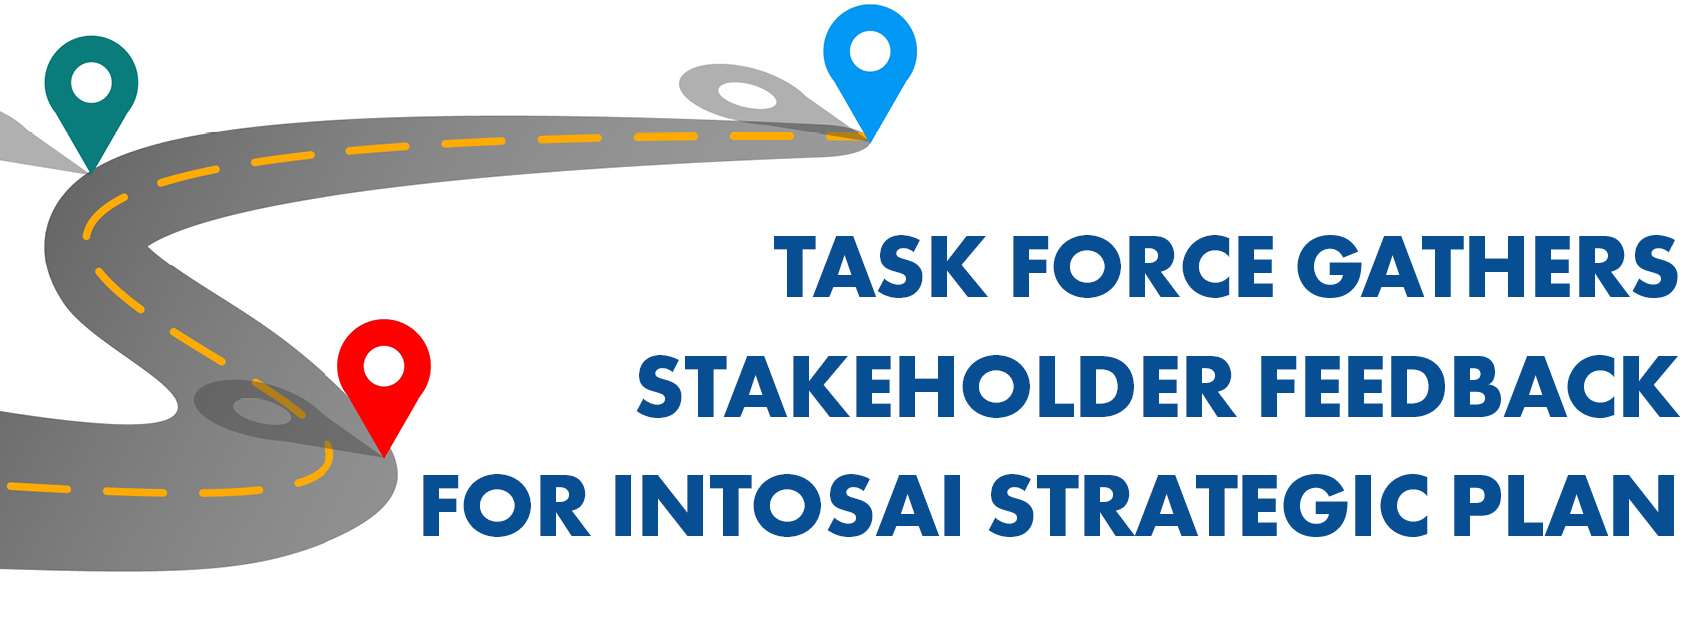 Task Force Gathers Stakeholder Feedback for INTOSAI Strategic Plan